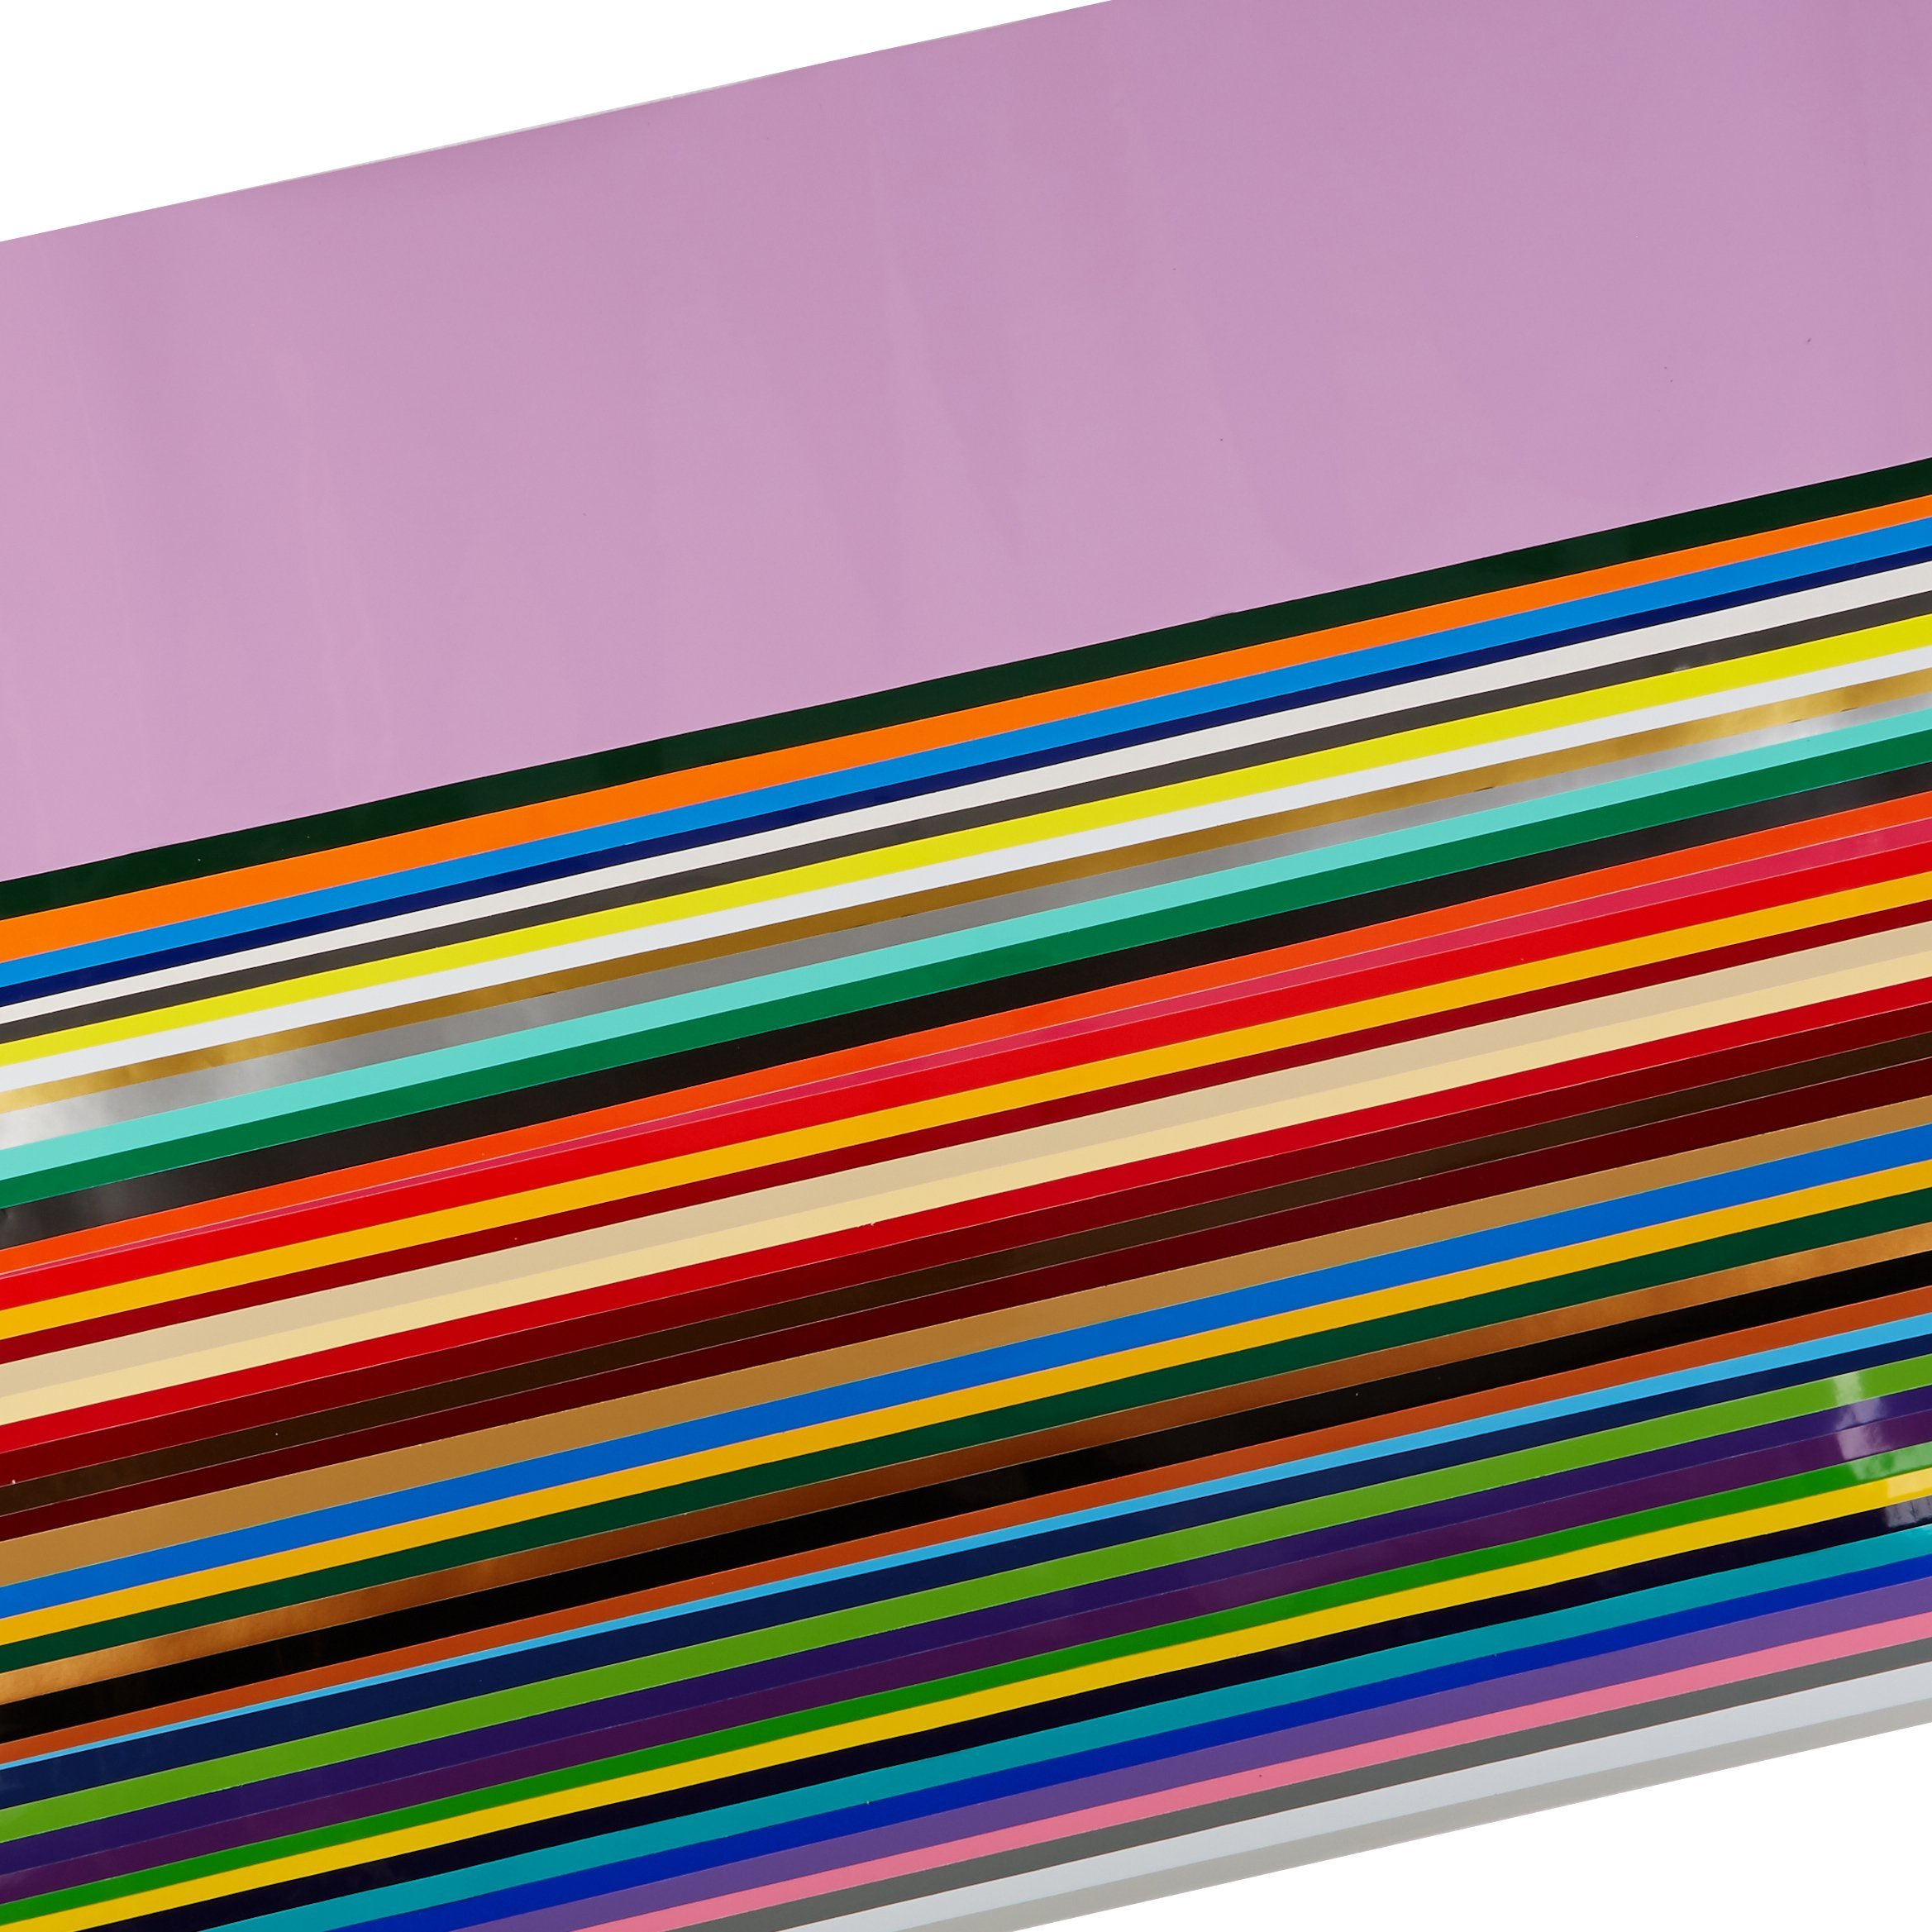 Oracal 651 Assortment of 47 Colors Each 5 Feet Long  Starter Value Pack